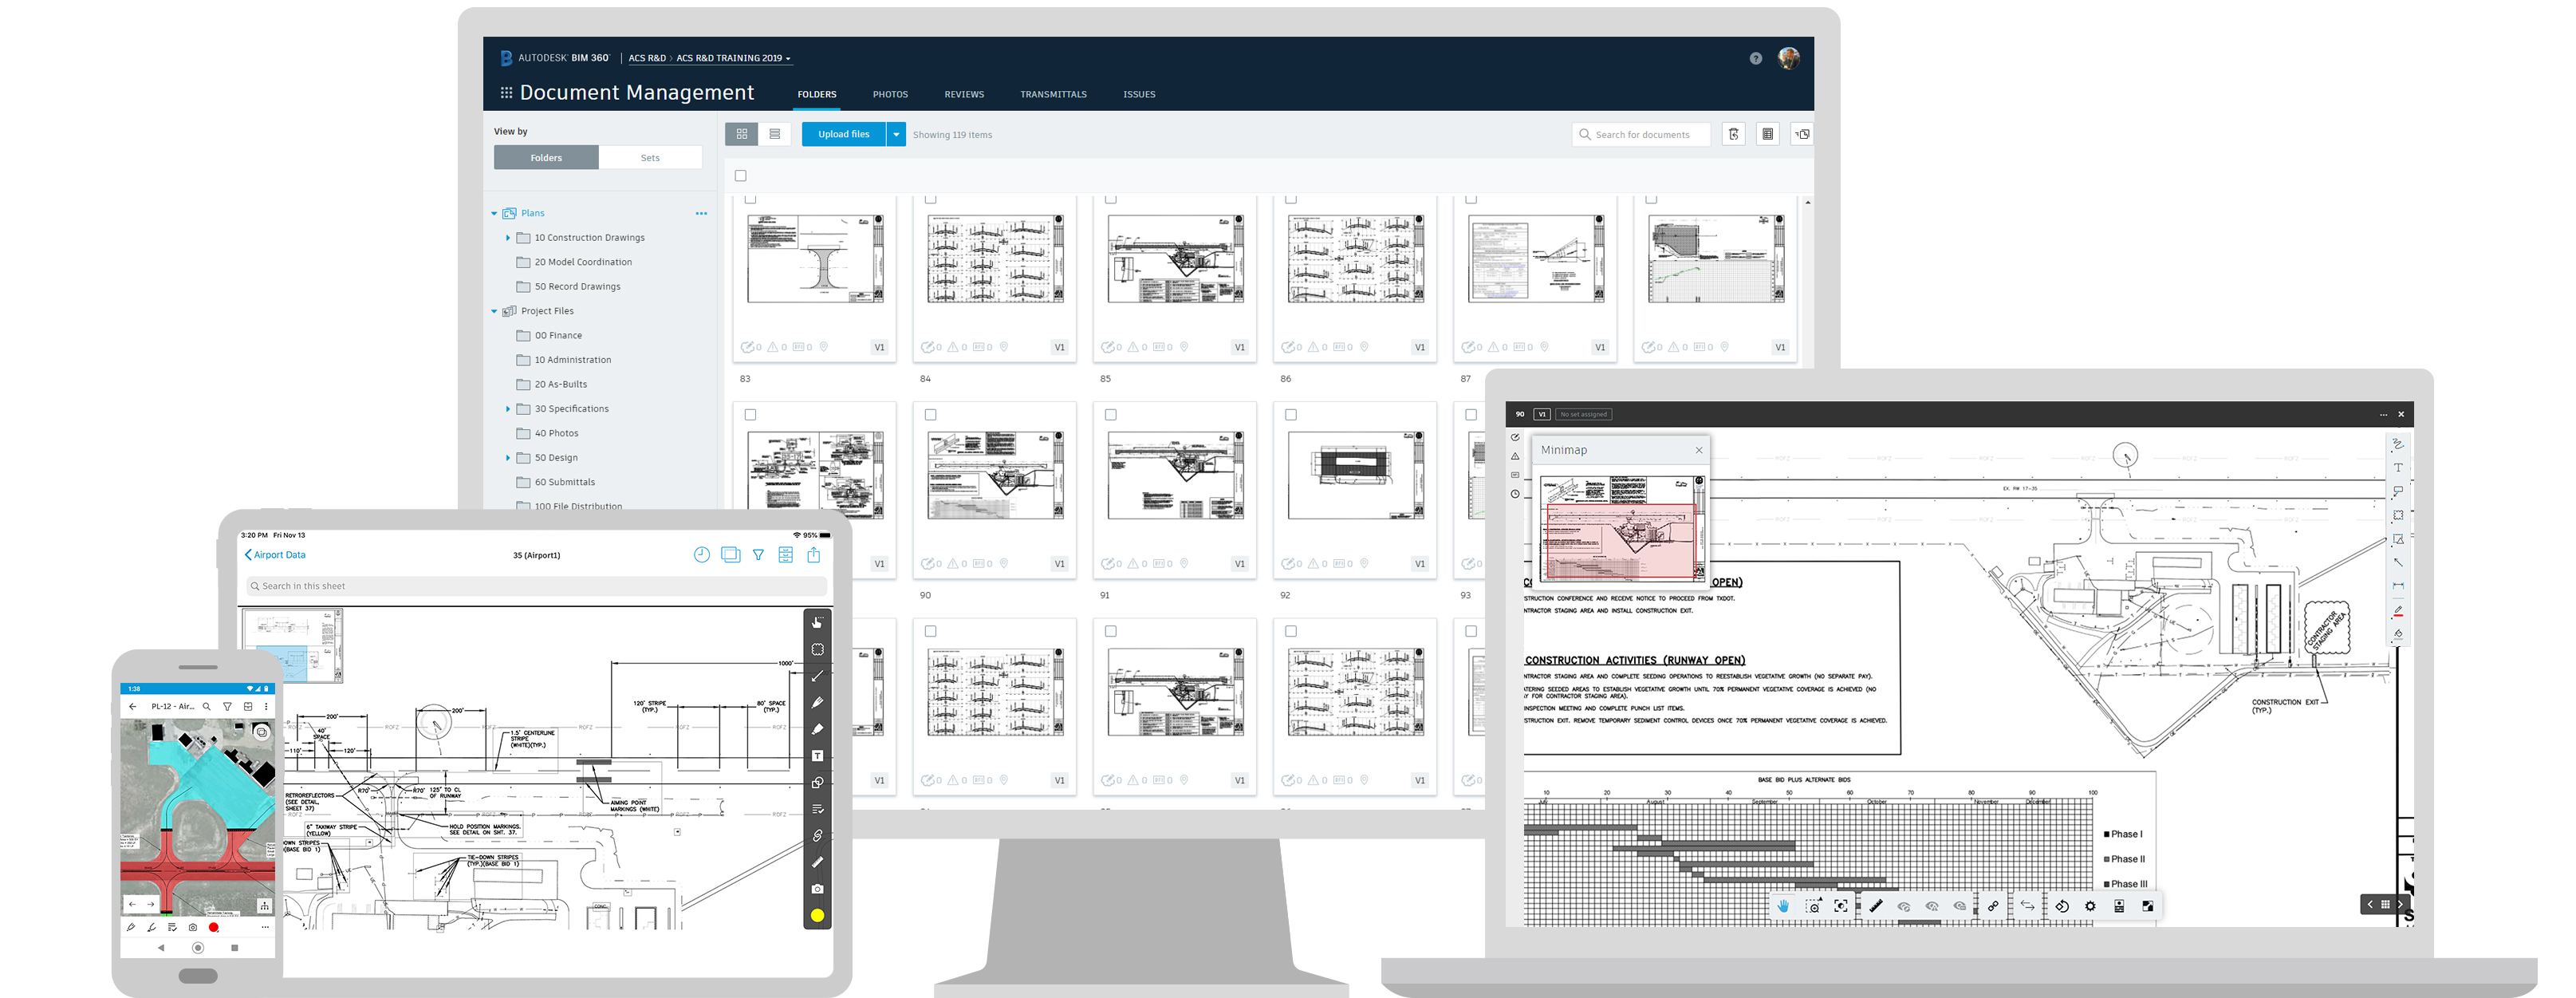 Autodesk construction software used across multiple devices